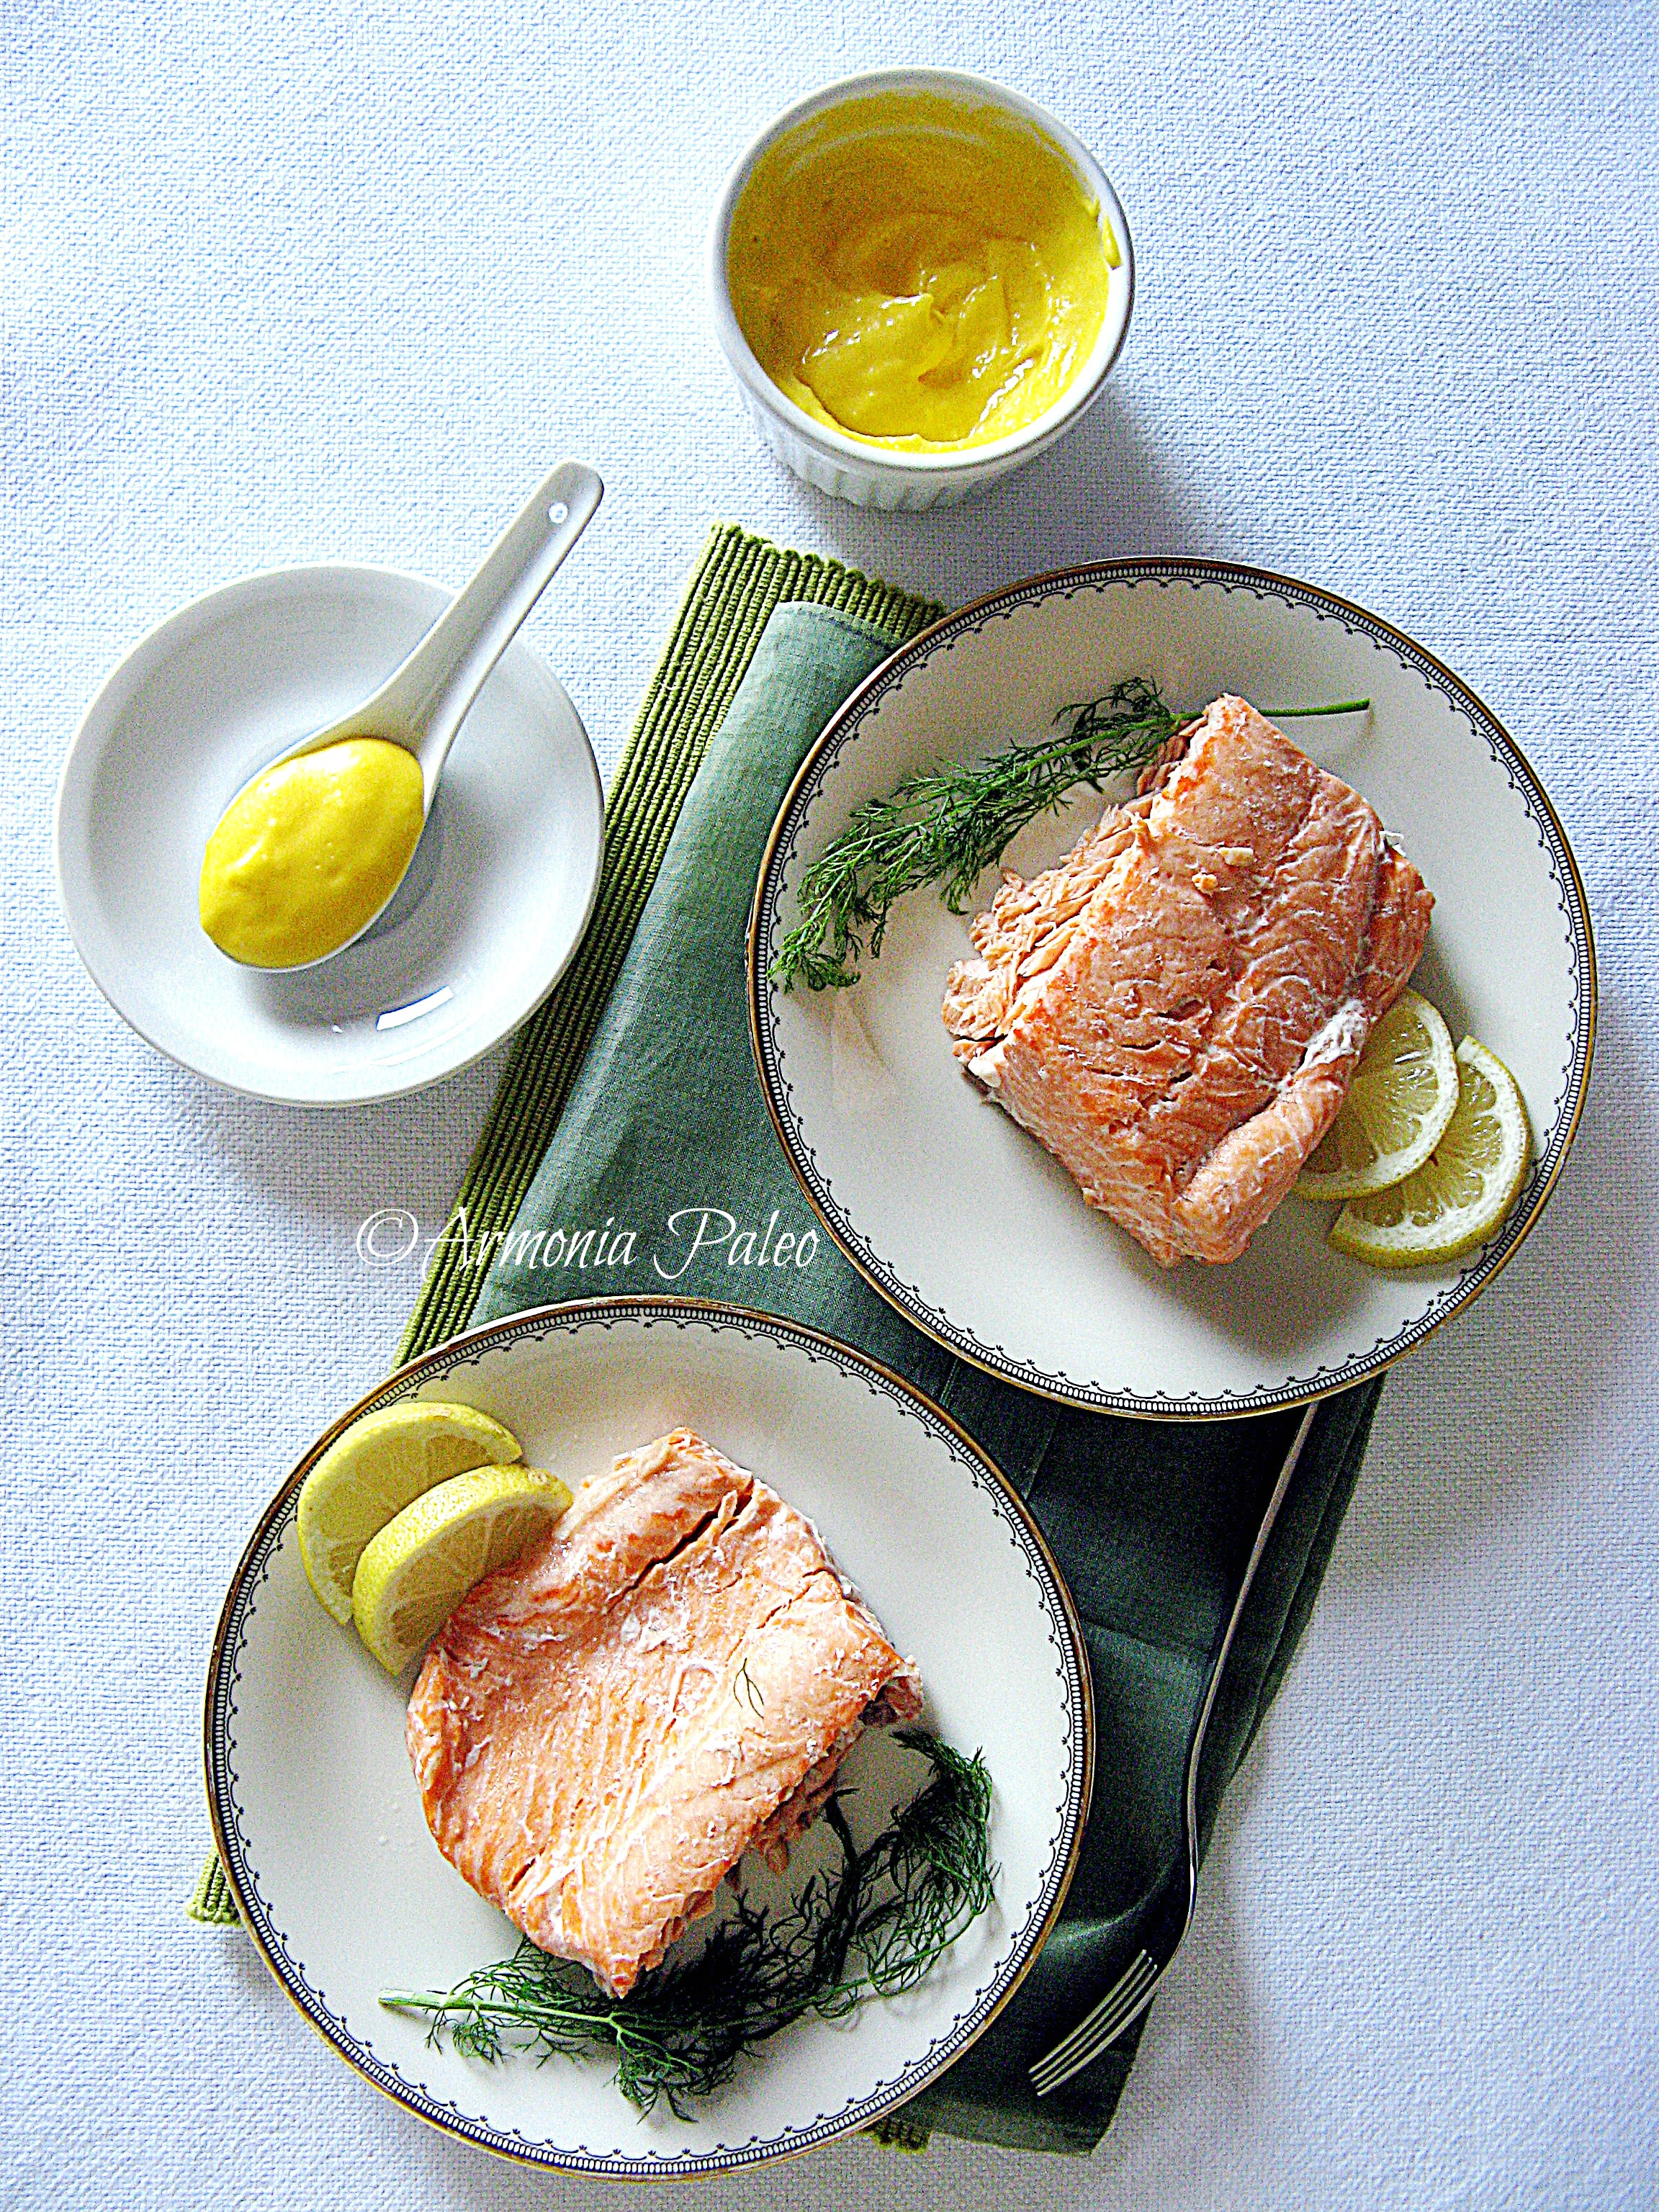 Irish Poached Salmon with Irish Butter Sauce - Salmone in Camicia con Salsa al Burro Irlandese